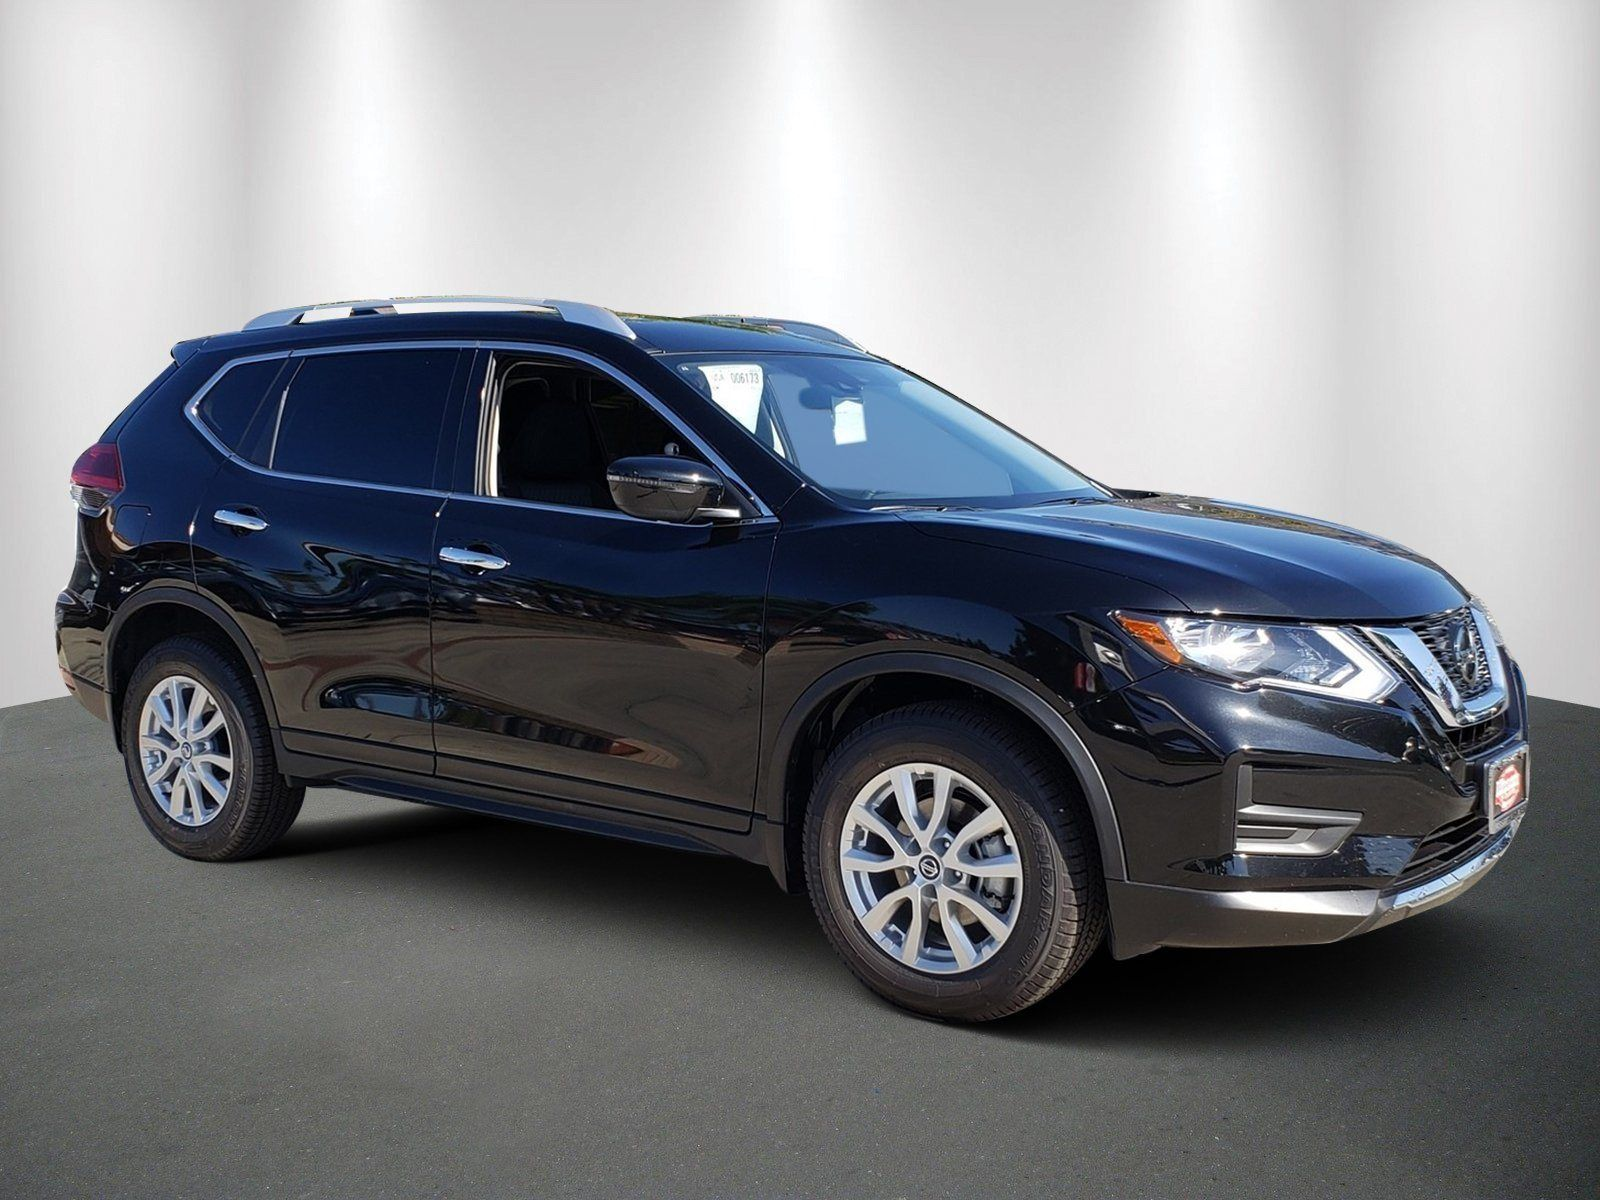 2020 Nissan Rogue Hybrid Photos in 2020 Nissan rogue